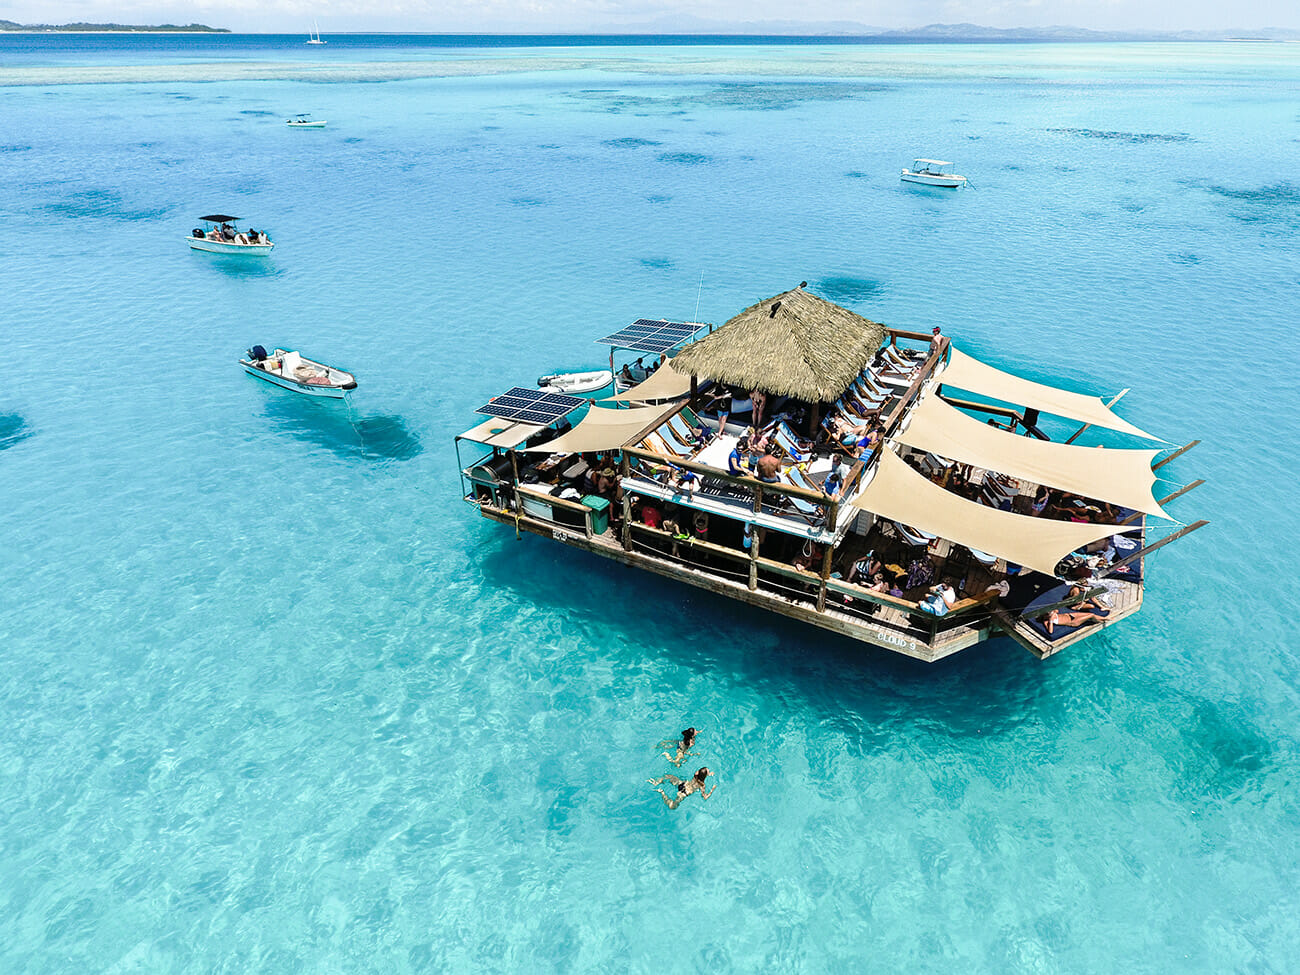 Cloud nine from above in Fiji